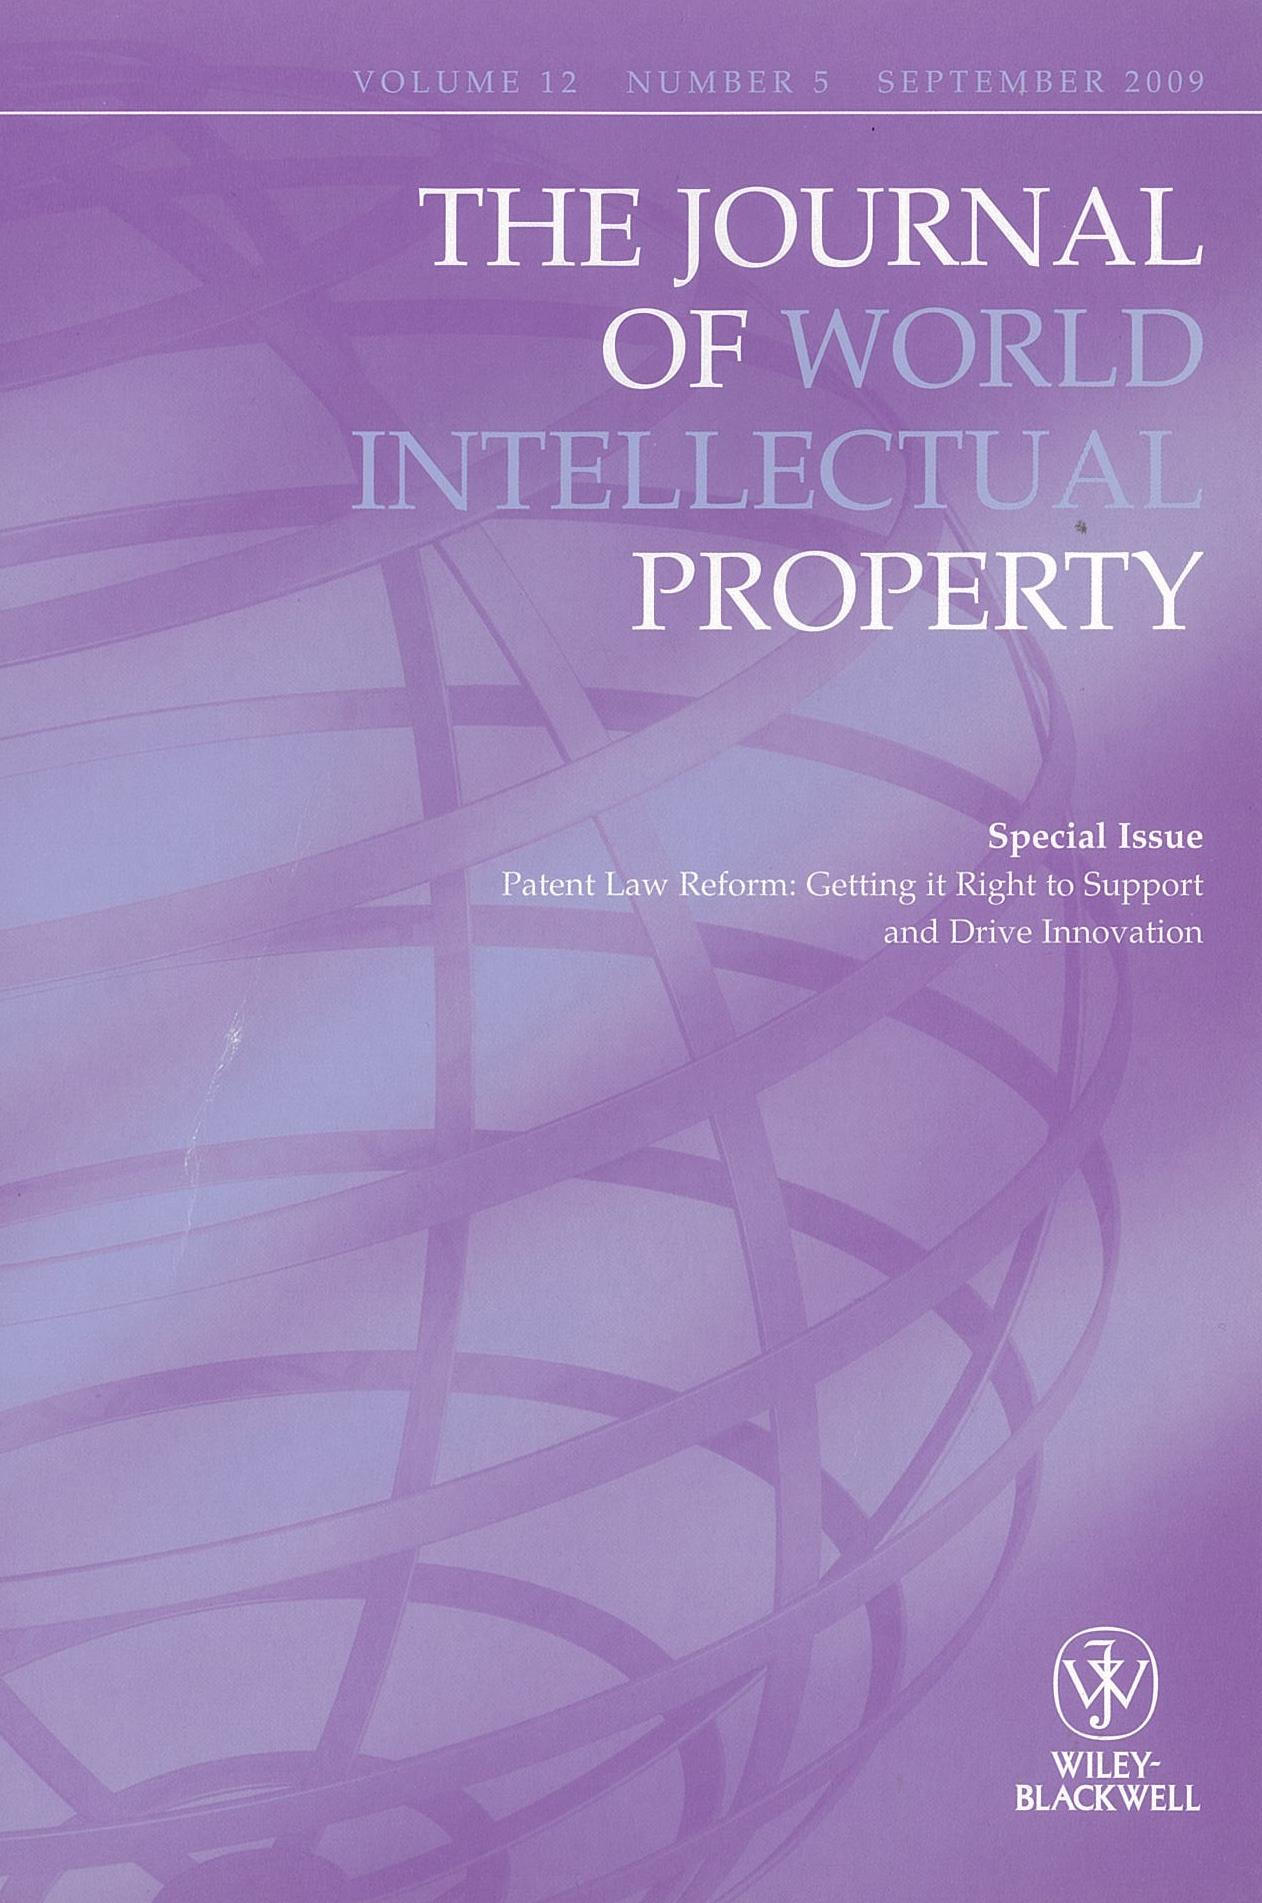 joural-of-world-intellectual-property